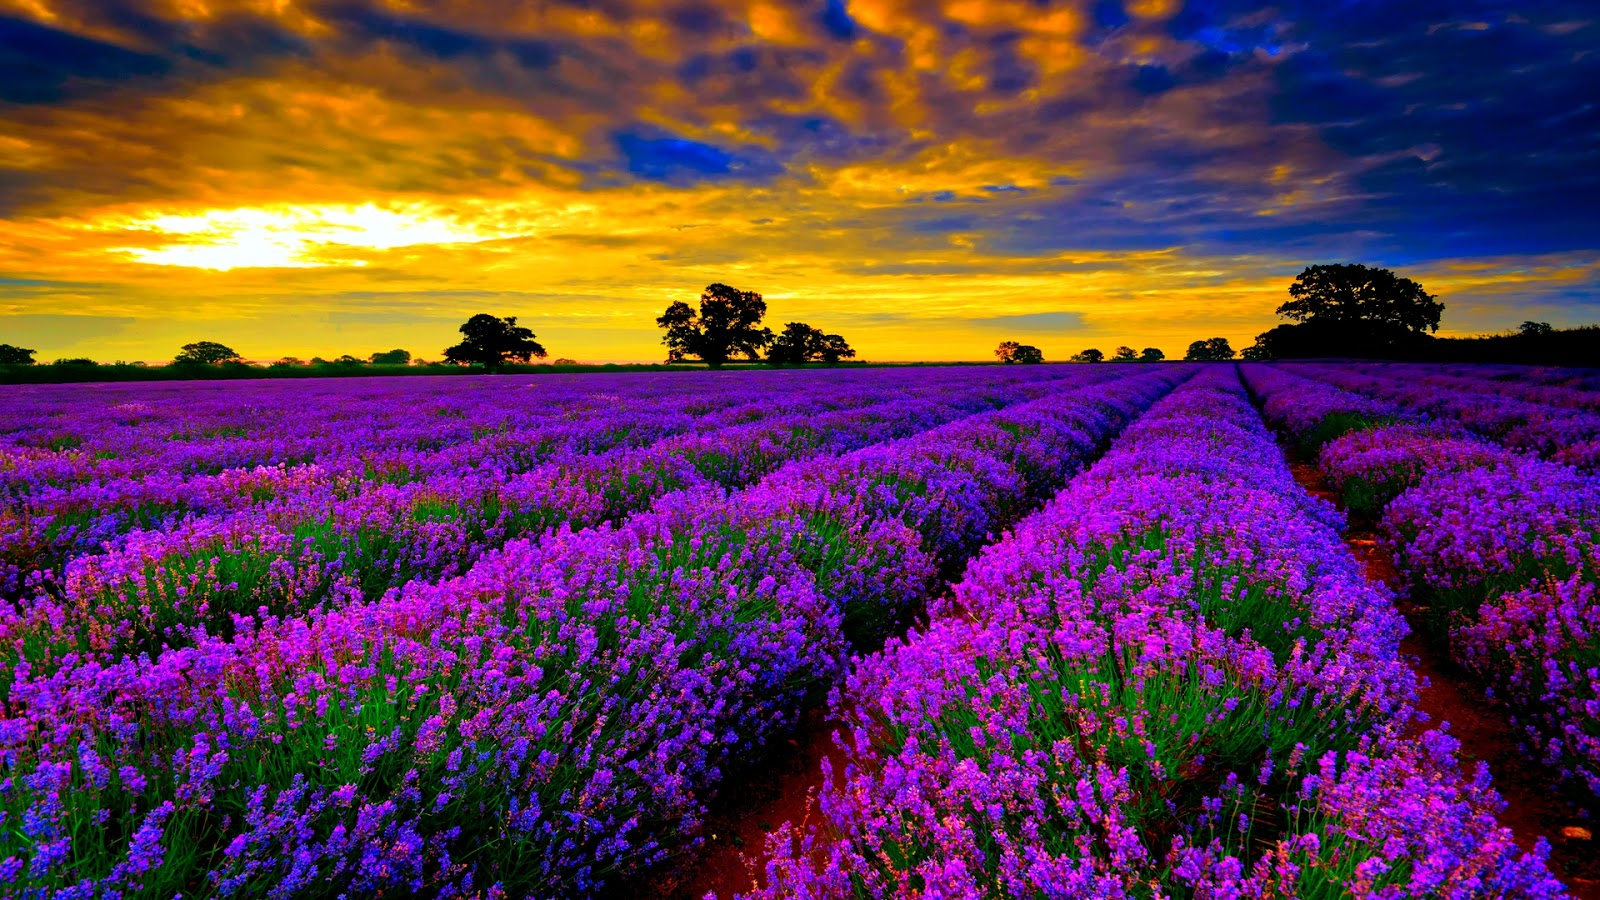 Lavender winter flowers melbourne florist lavender is a pretty and fragrant addition to any garden lavender is a herb herb many of us love but did you know it is also one of the most powerful mightylinksfo